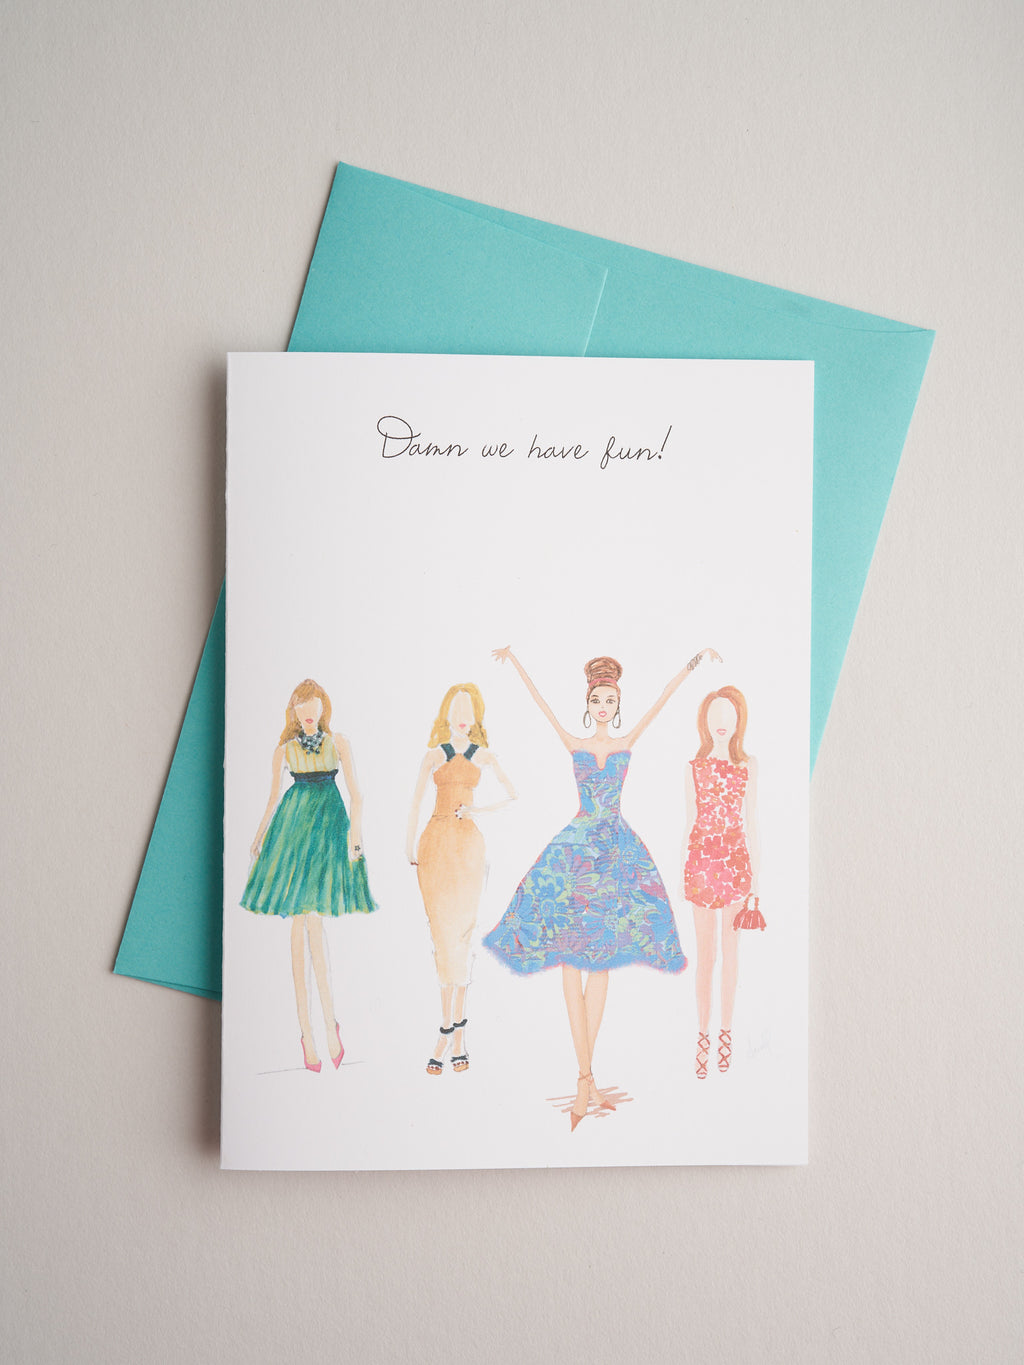 TQ-14-07 | Damn we have fun! - Greeting Cards - Queen & Grace